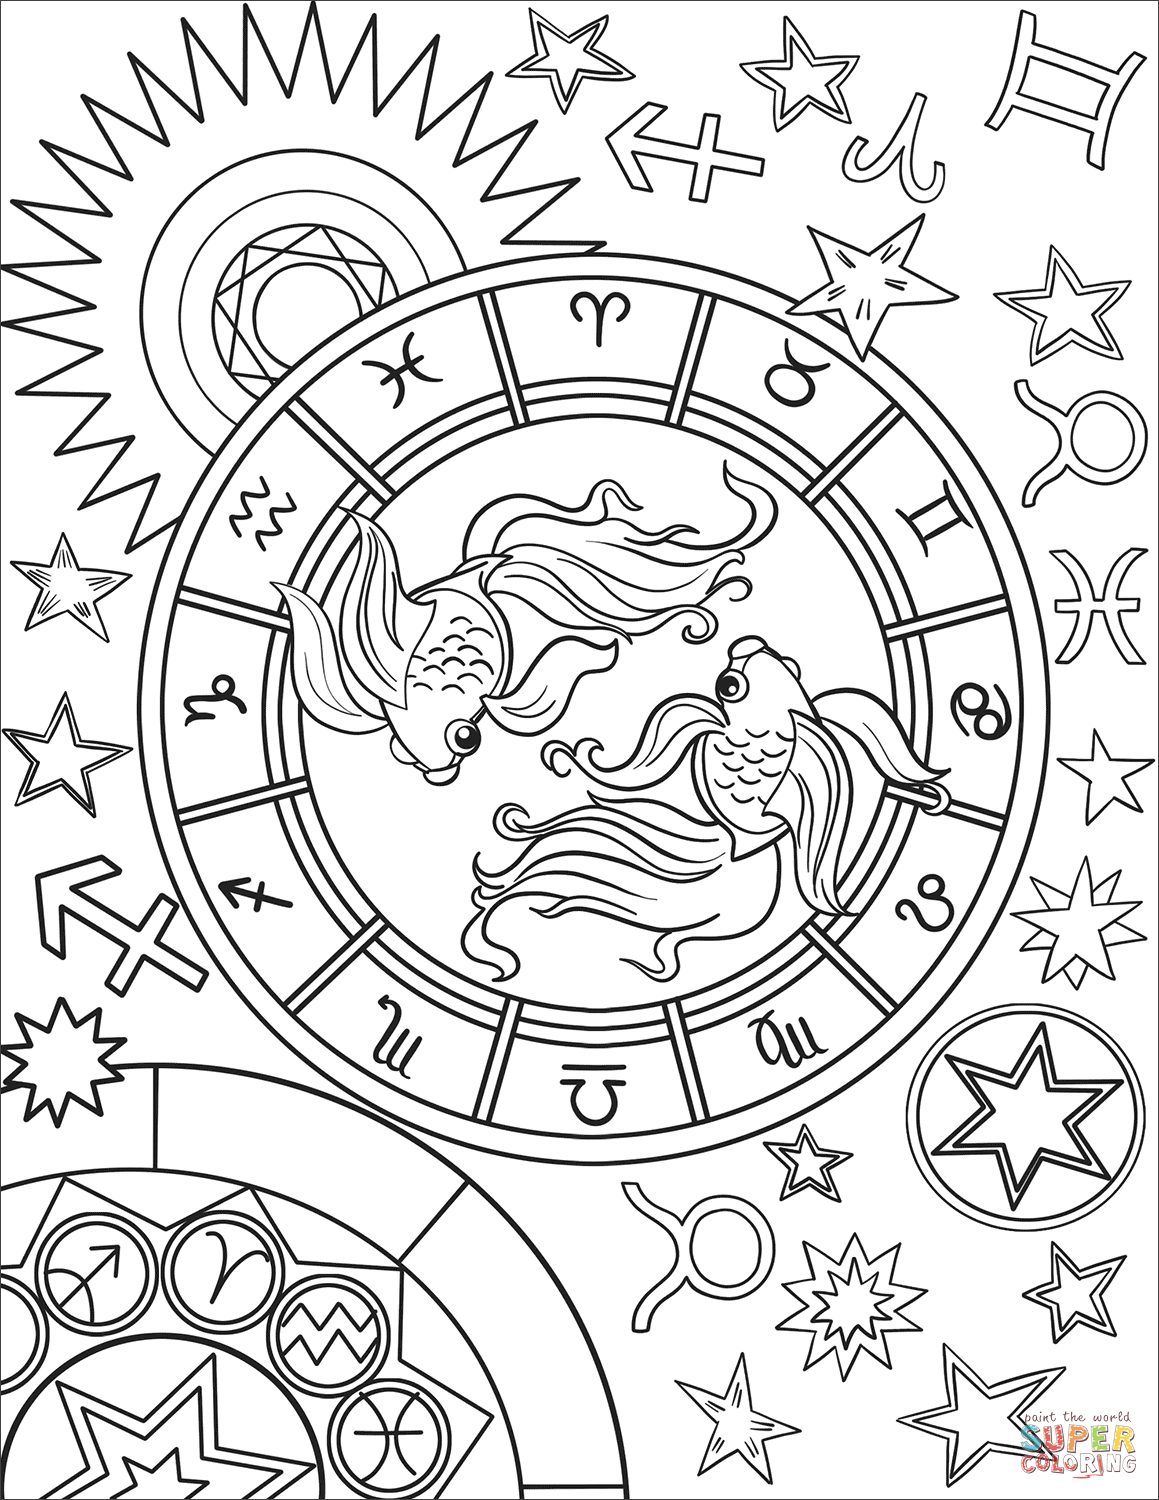 Pisces Zodiac Sign Super Coloring Witch Coloring Pages Zodiac Signs Colors Coloring Pages [ 1500 x 1159 Pixel ]